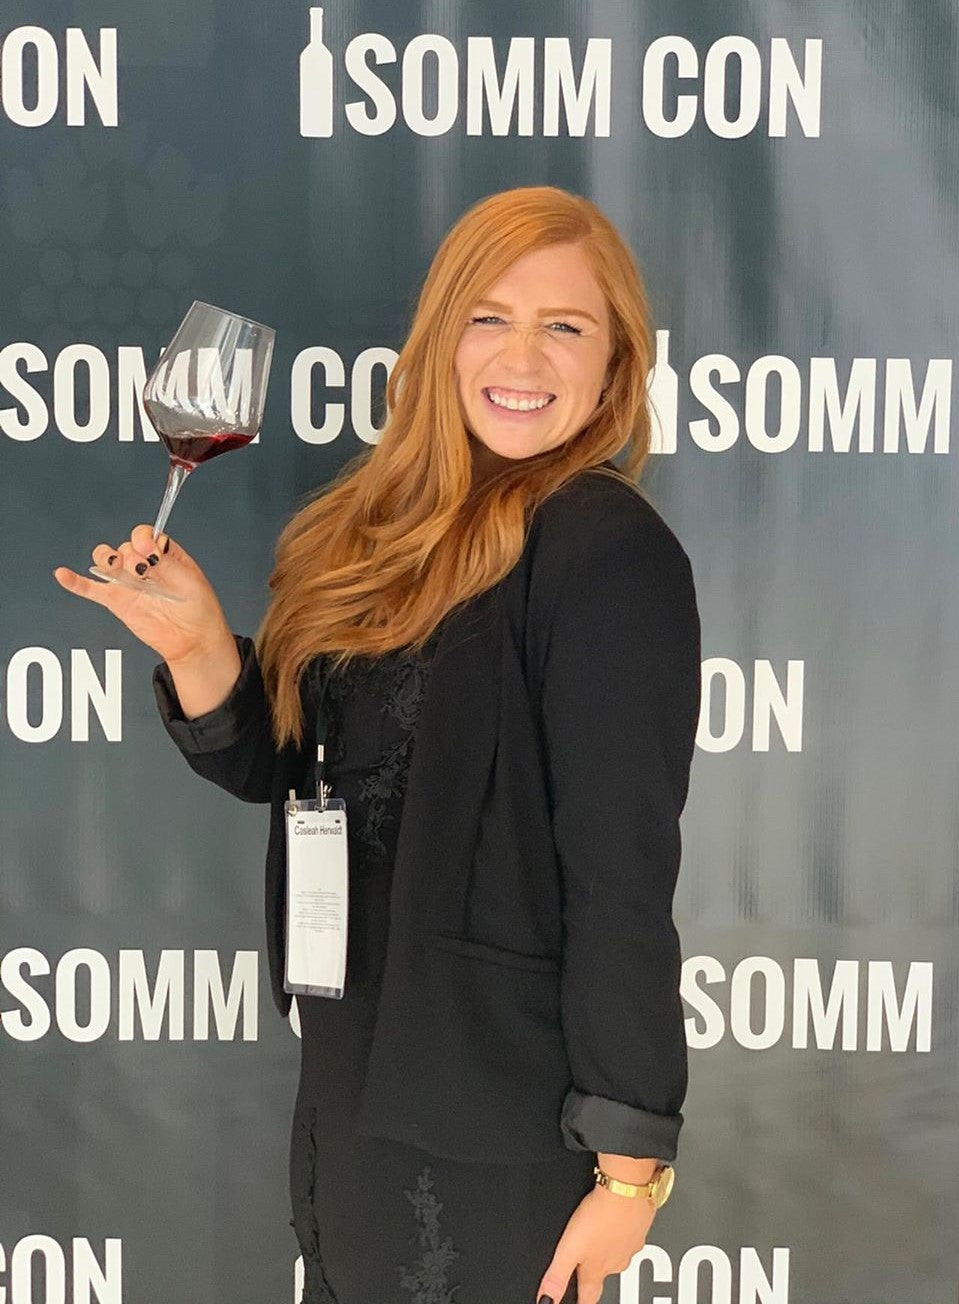 Casleah at Somm Con